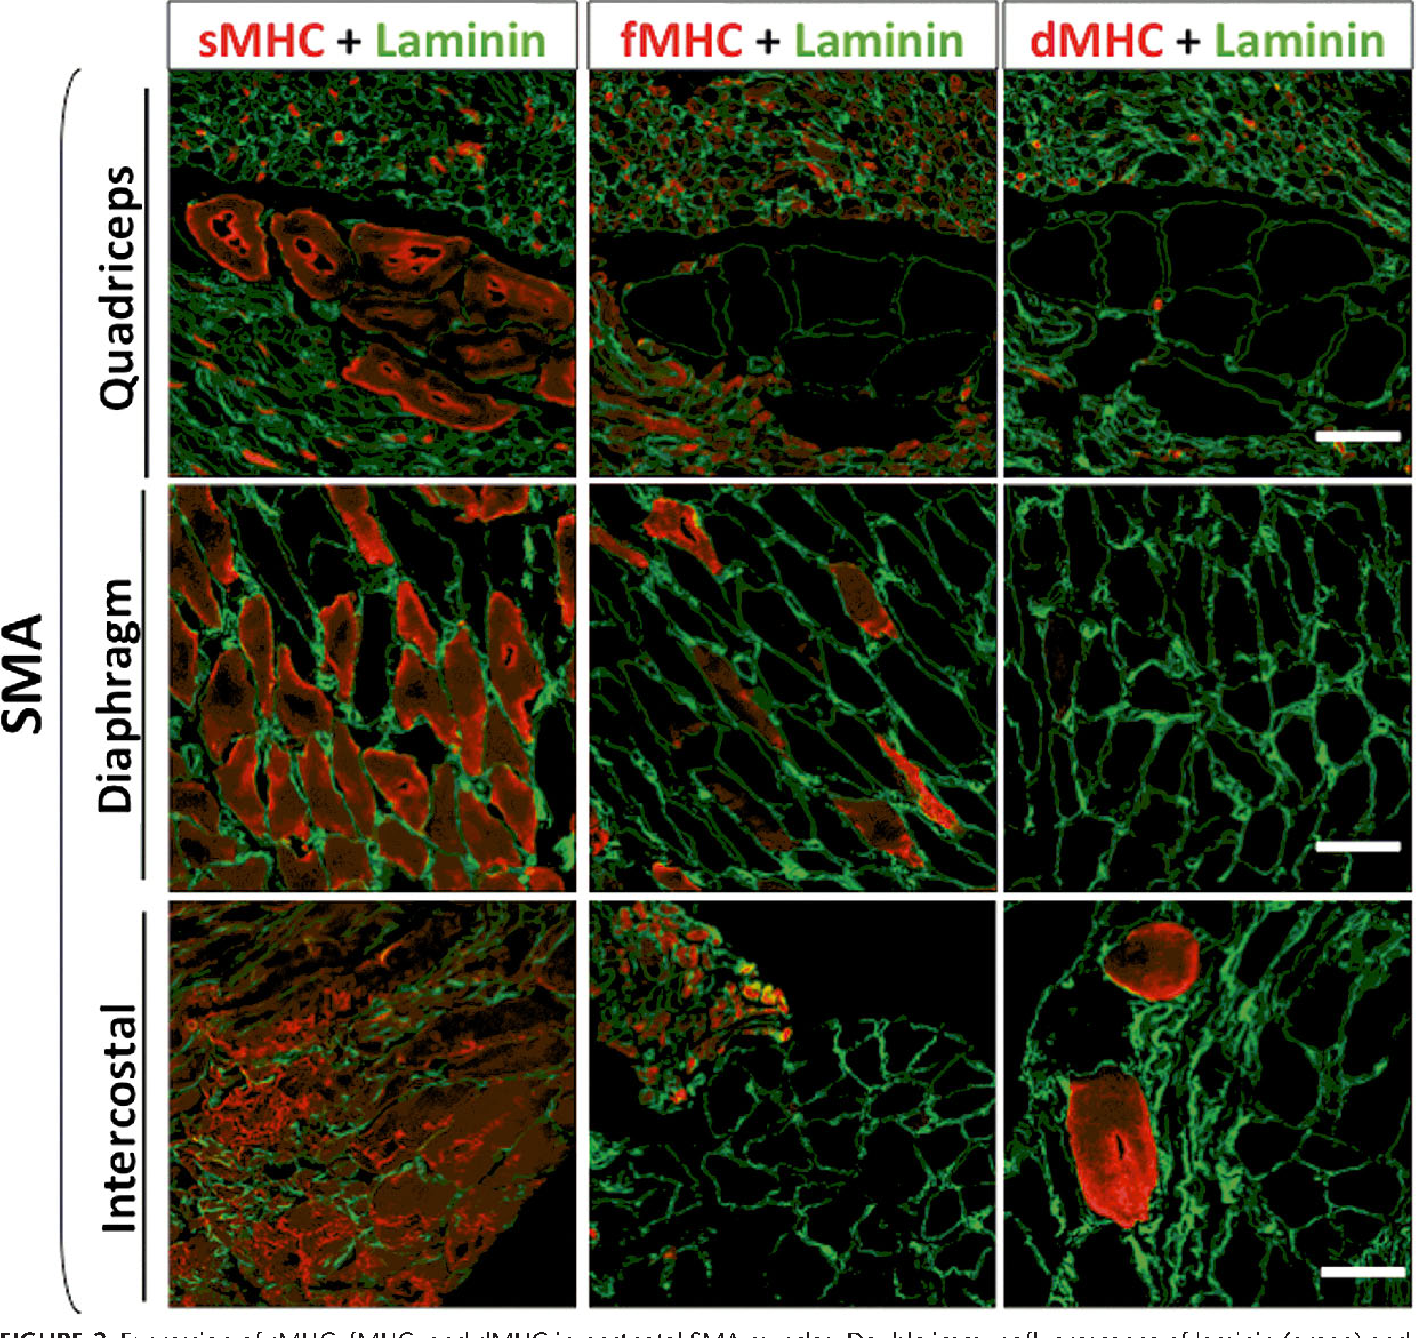 FIGURE 2. Expression of sMHC, fMHC, and dMHC in postnatal SMA muscles. Double immunofluorescence of laminin (green) and slow, fast, or developmental myosin (red) in quadriceps, diaphragm, and intercostal postnatal SMA muscles. Note the different patterns of expression in the different muscles analyzed. In diaphragm and intercostal SMA muscles, slow fibers predominate, whereas in quadriceps muscles, hypertrophic fibers show a slow phenotype and atrophic fibers show a mosaic between slow and fast patterns. Scale bar = 50 Km.